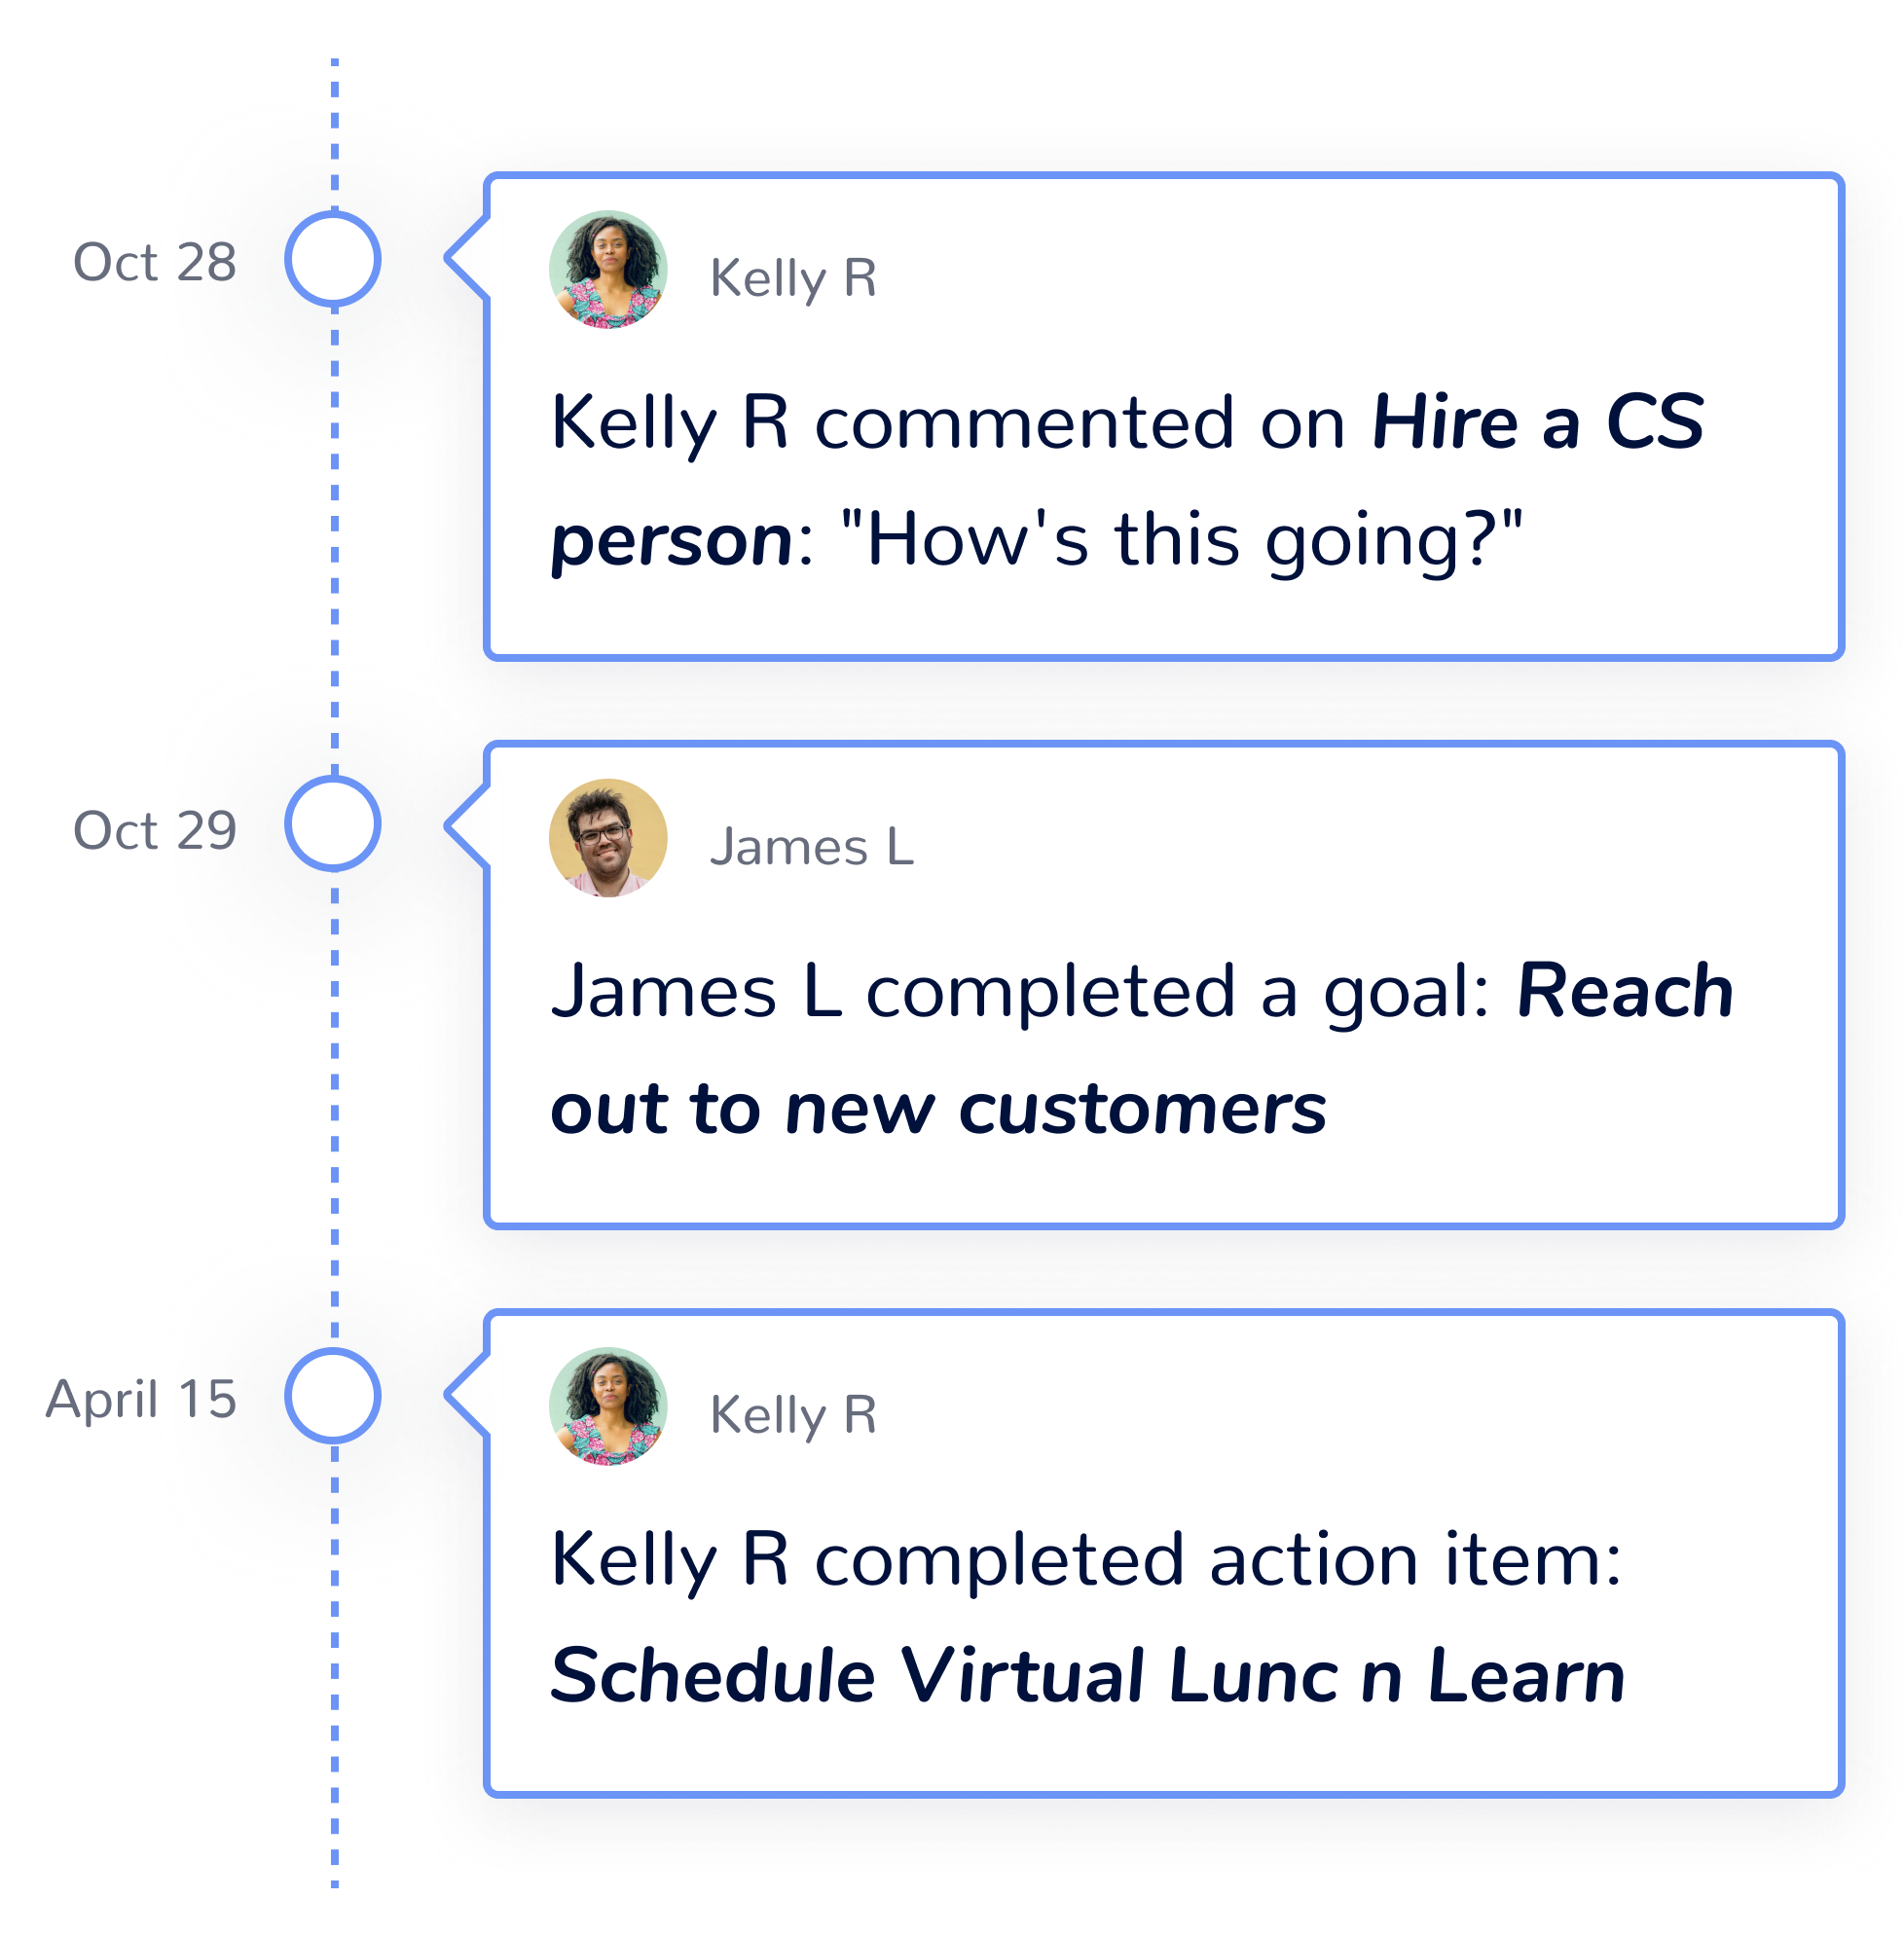 example of showing workspace history keeps teams accountable